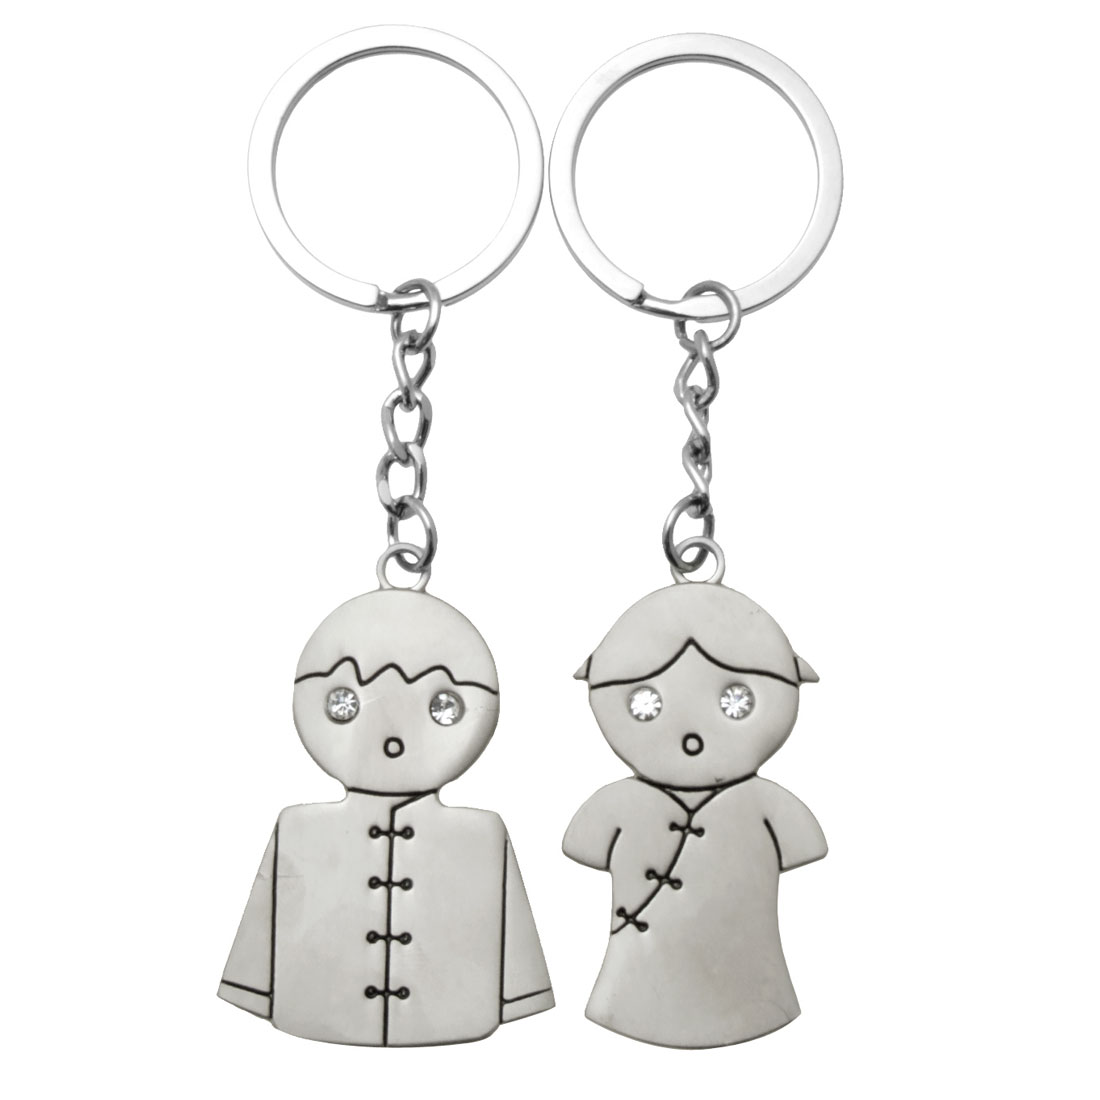 Silvery Chinese Couple Doll Pair Keychain Valentine's Day Gift